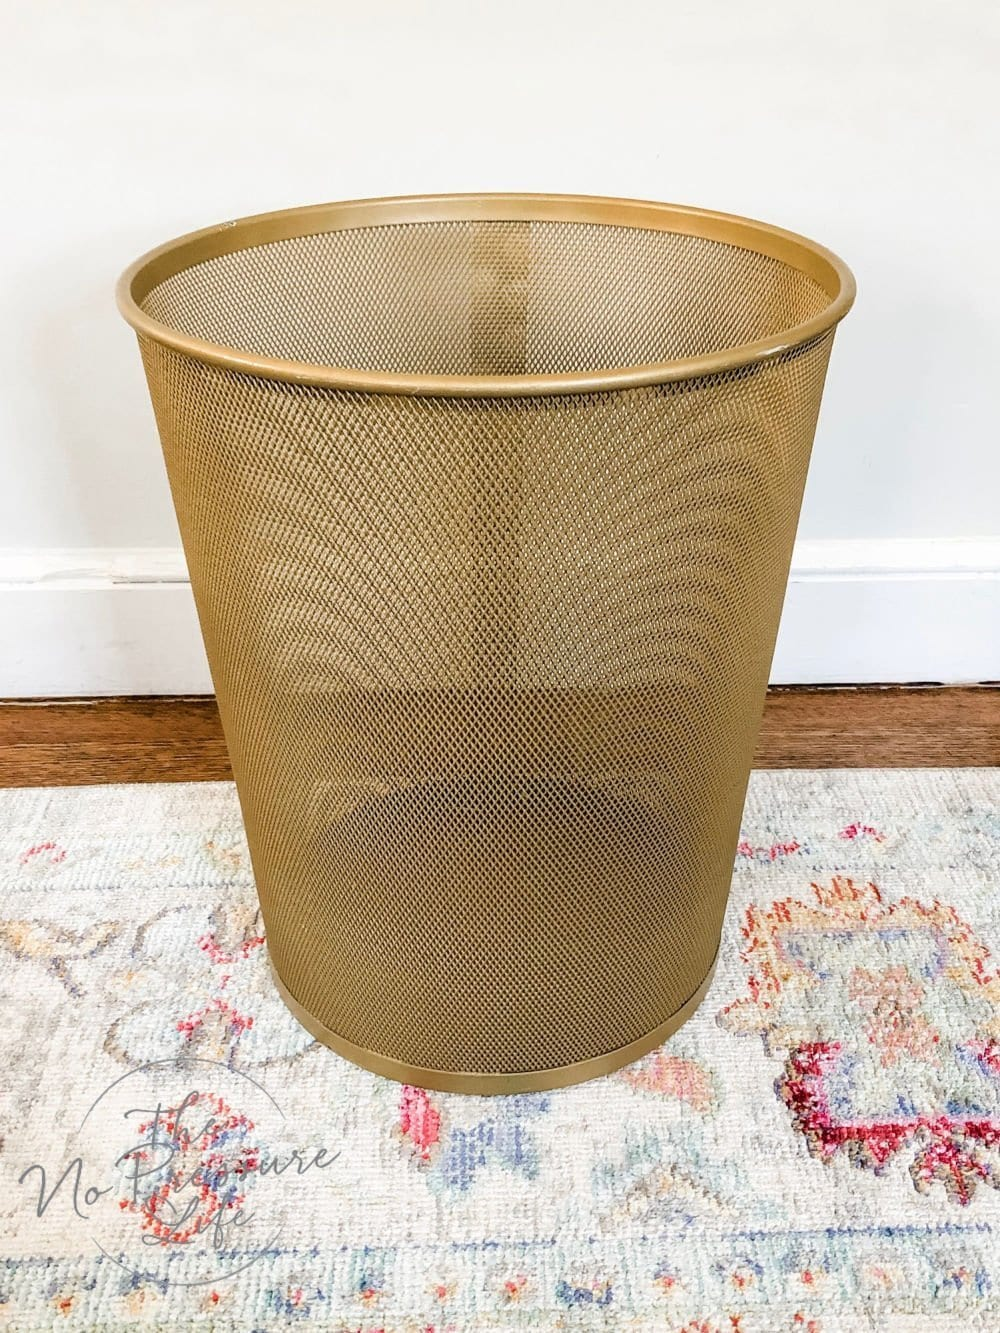 easy DIY spray paint ideas - spray painting metal trash can gold